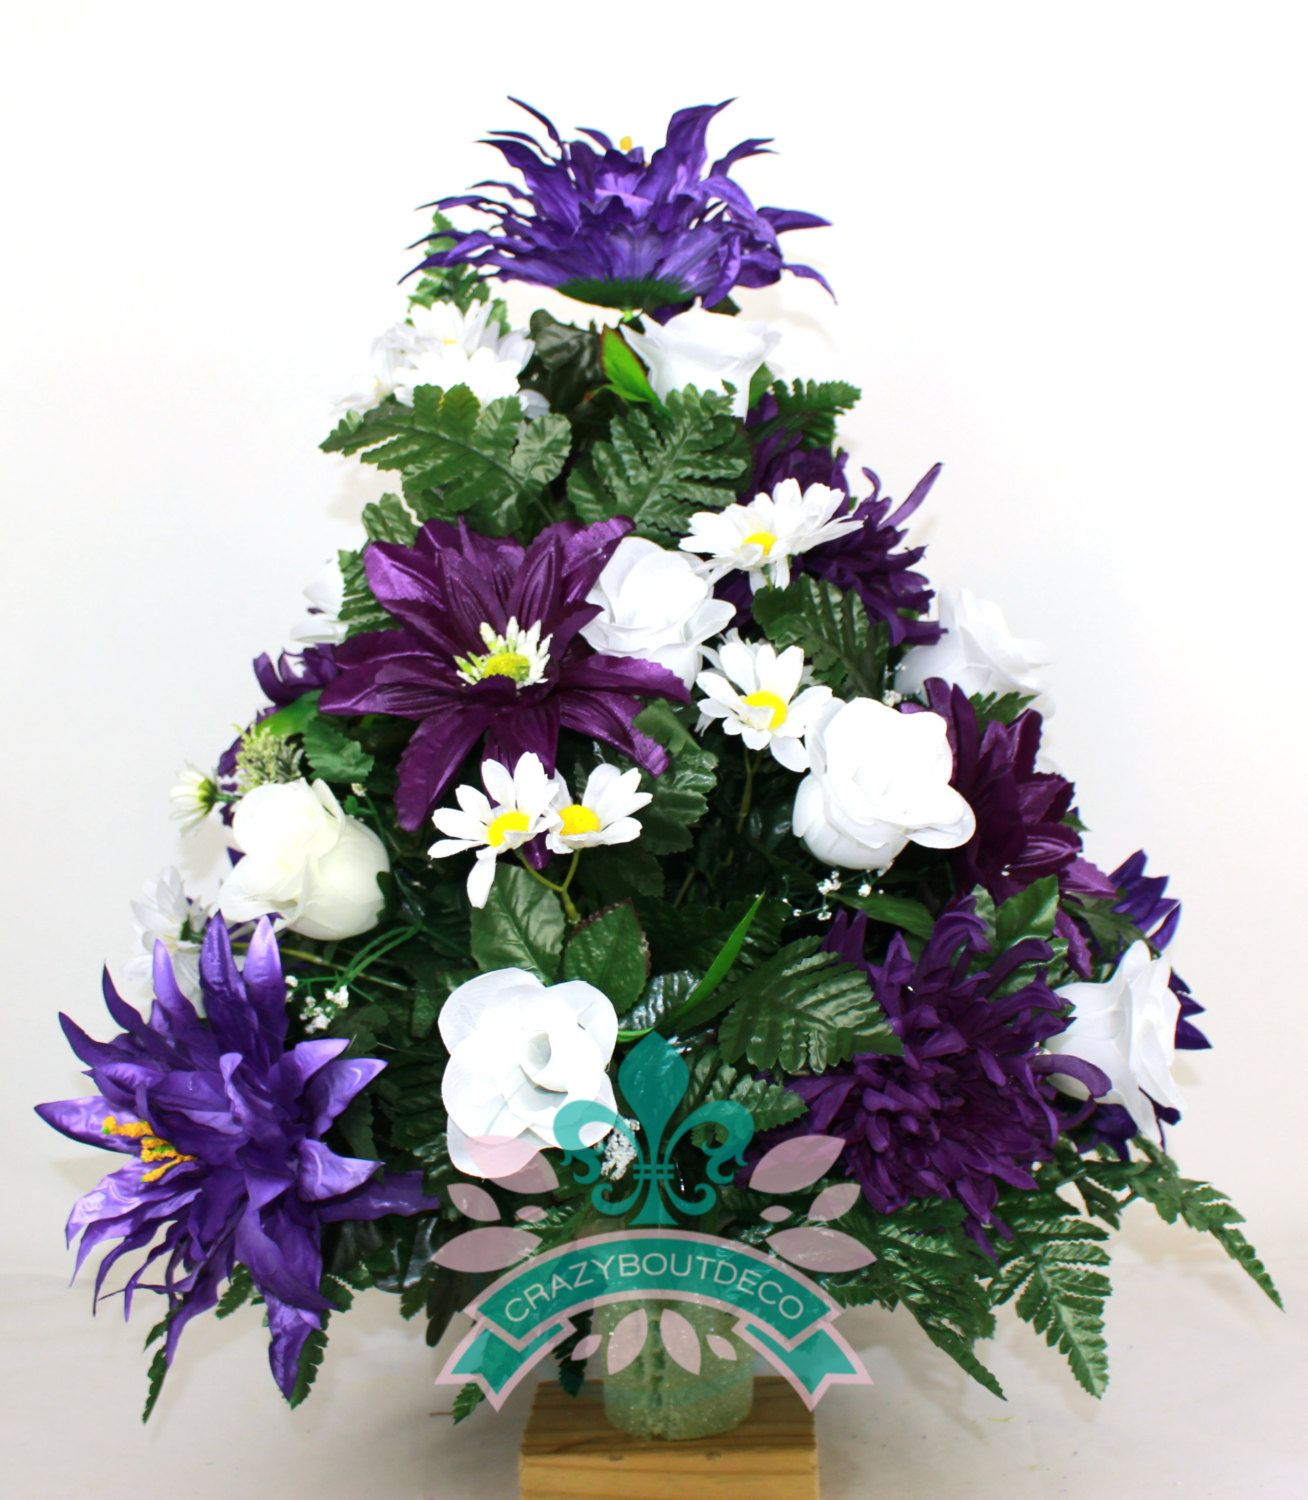 Xl beautiful purple daisies spring cemetery flower arrangement for xl beautiful purple daisies spring cemetery flower arrangement for a 3 inch vase by crazyboutdeco on reviewsmspy